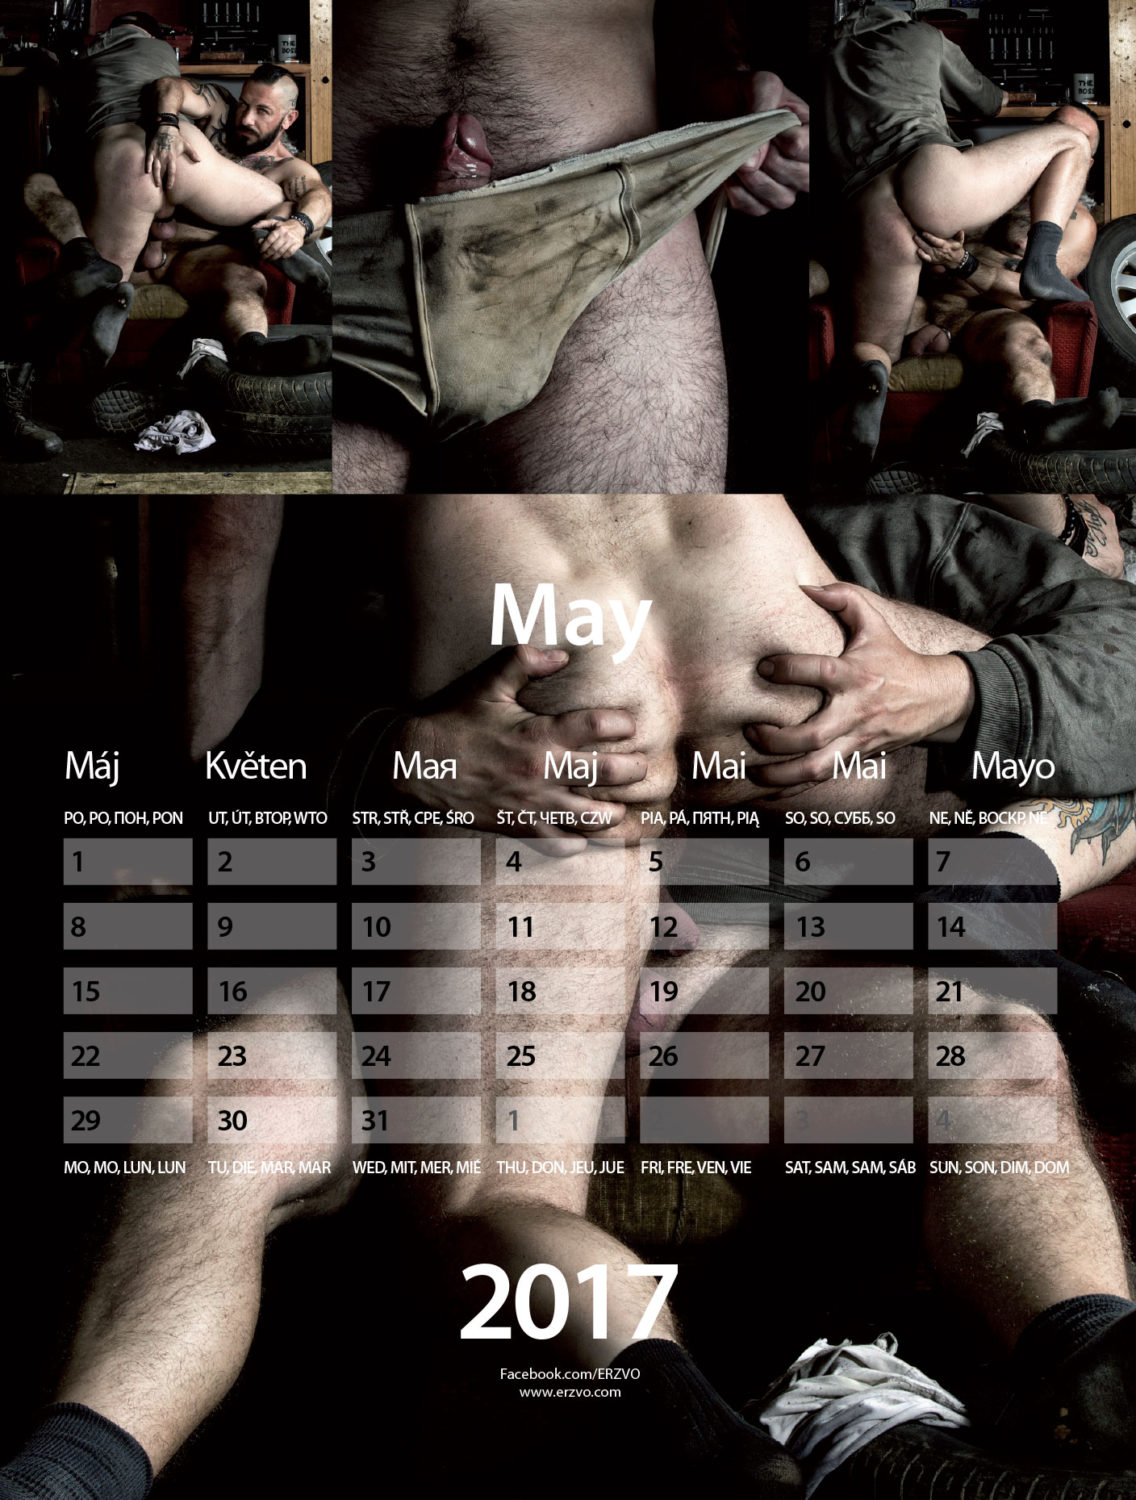 kalendar-280x210mm-2017-no-spread-print-2-11